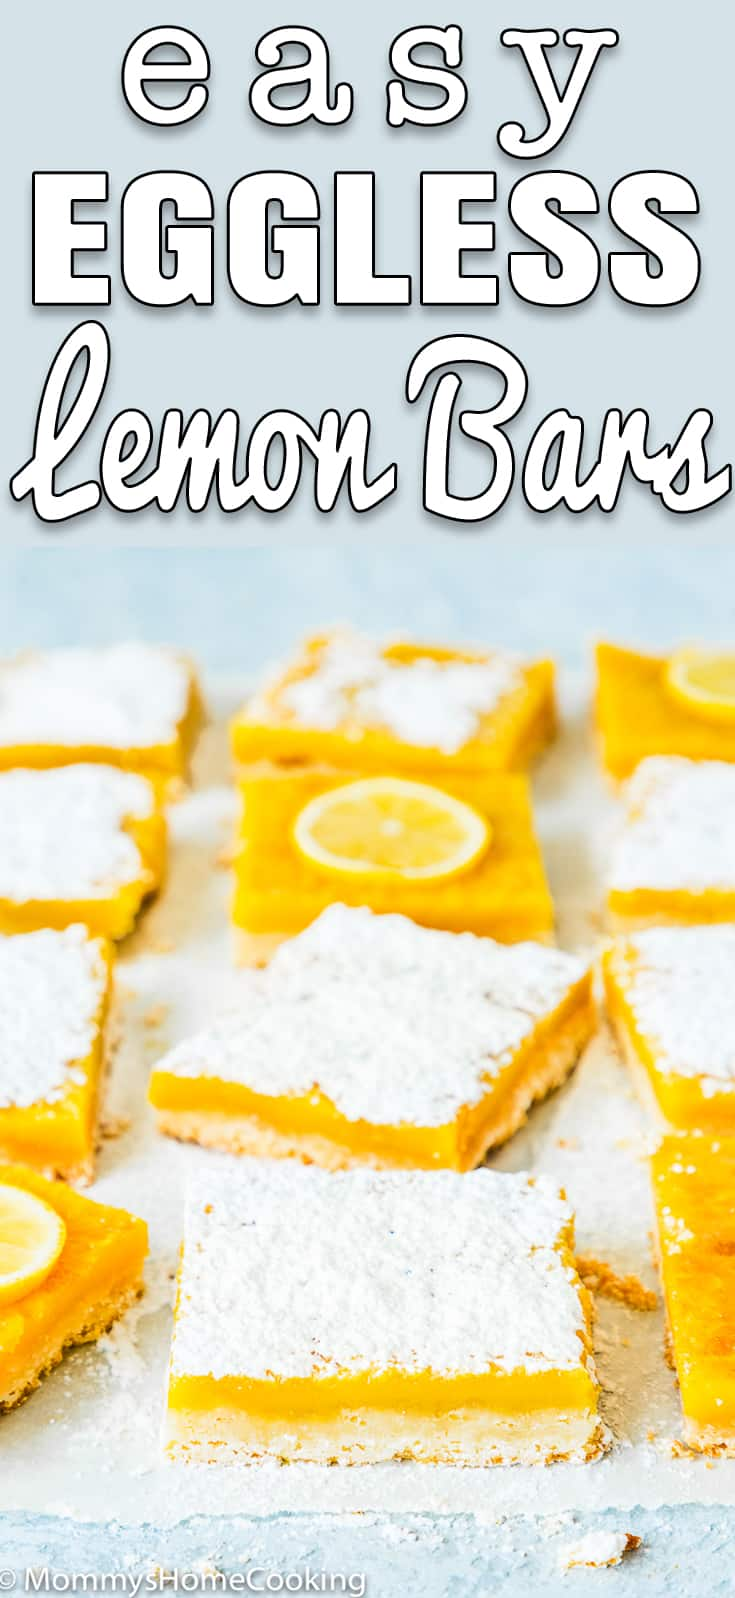 Easy Eggless Lemon Bars dusted with icing sugar with descriptive text